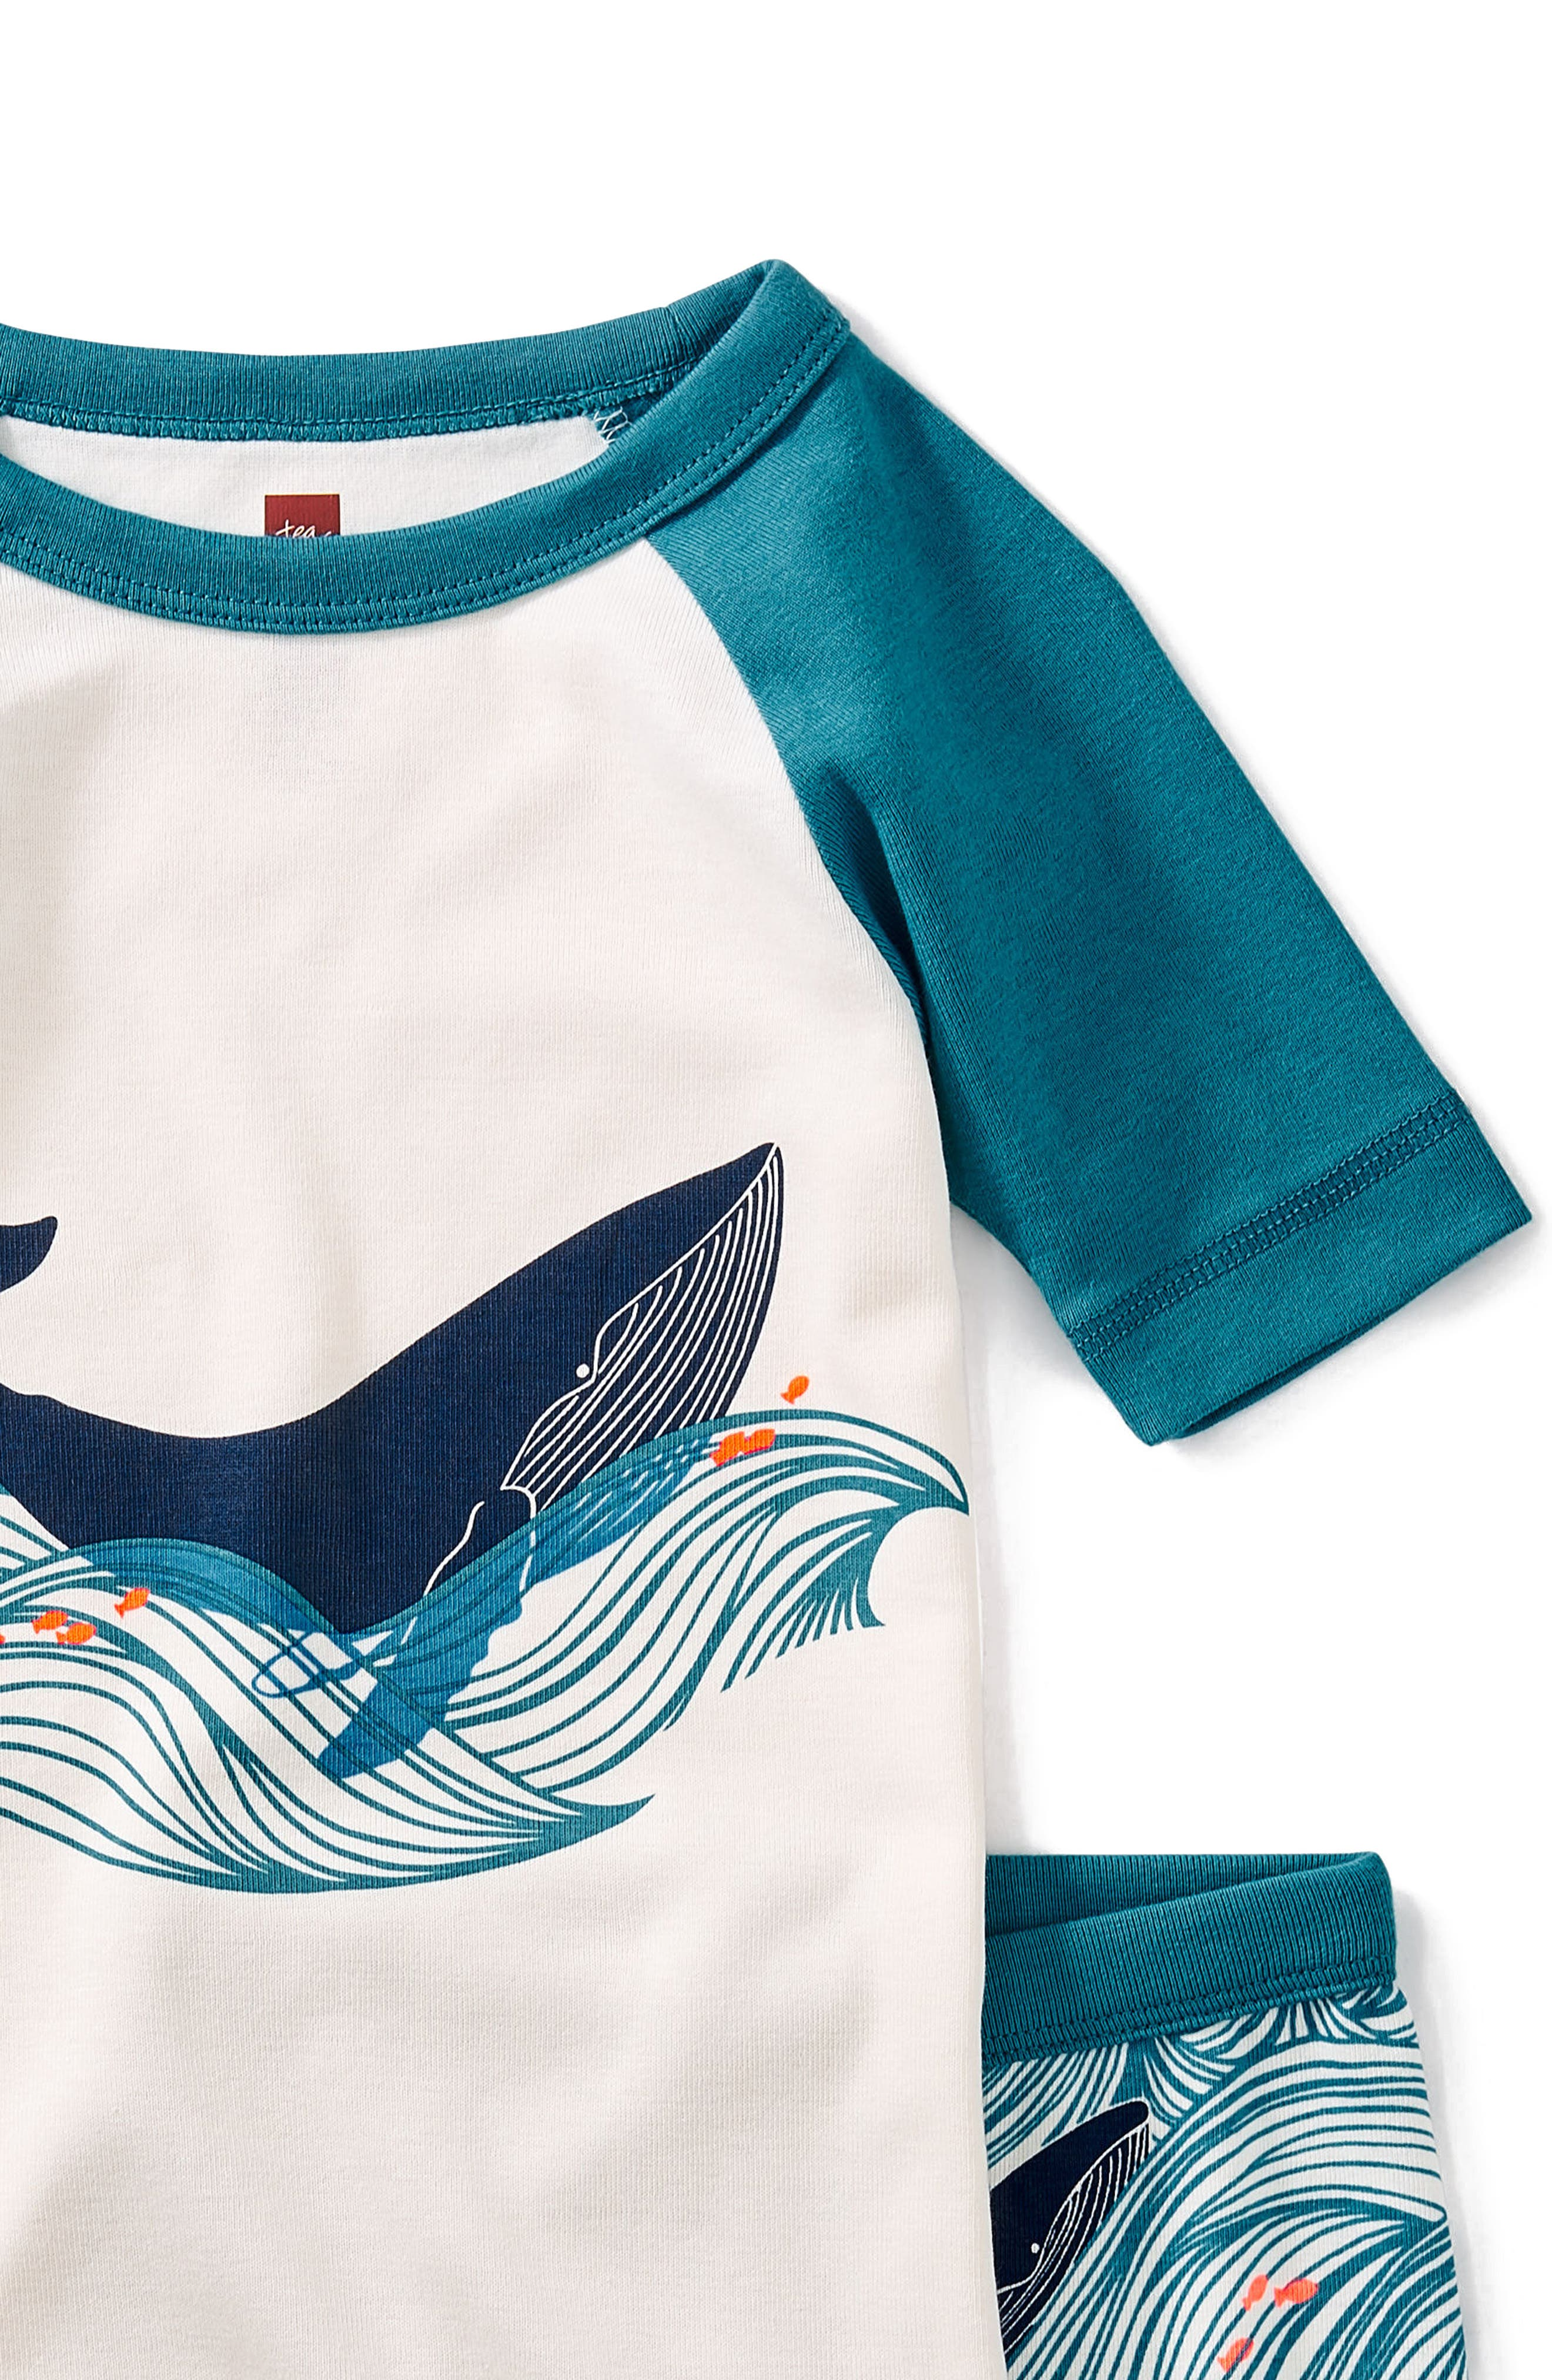 Wavy Whale Fitted Two-Piece Short Pajamas,                             Alternate thumbnail 2, color,                             400